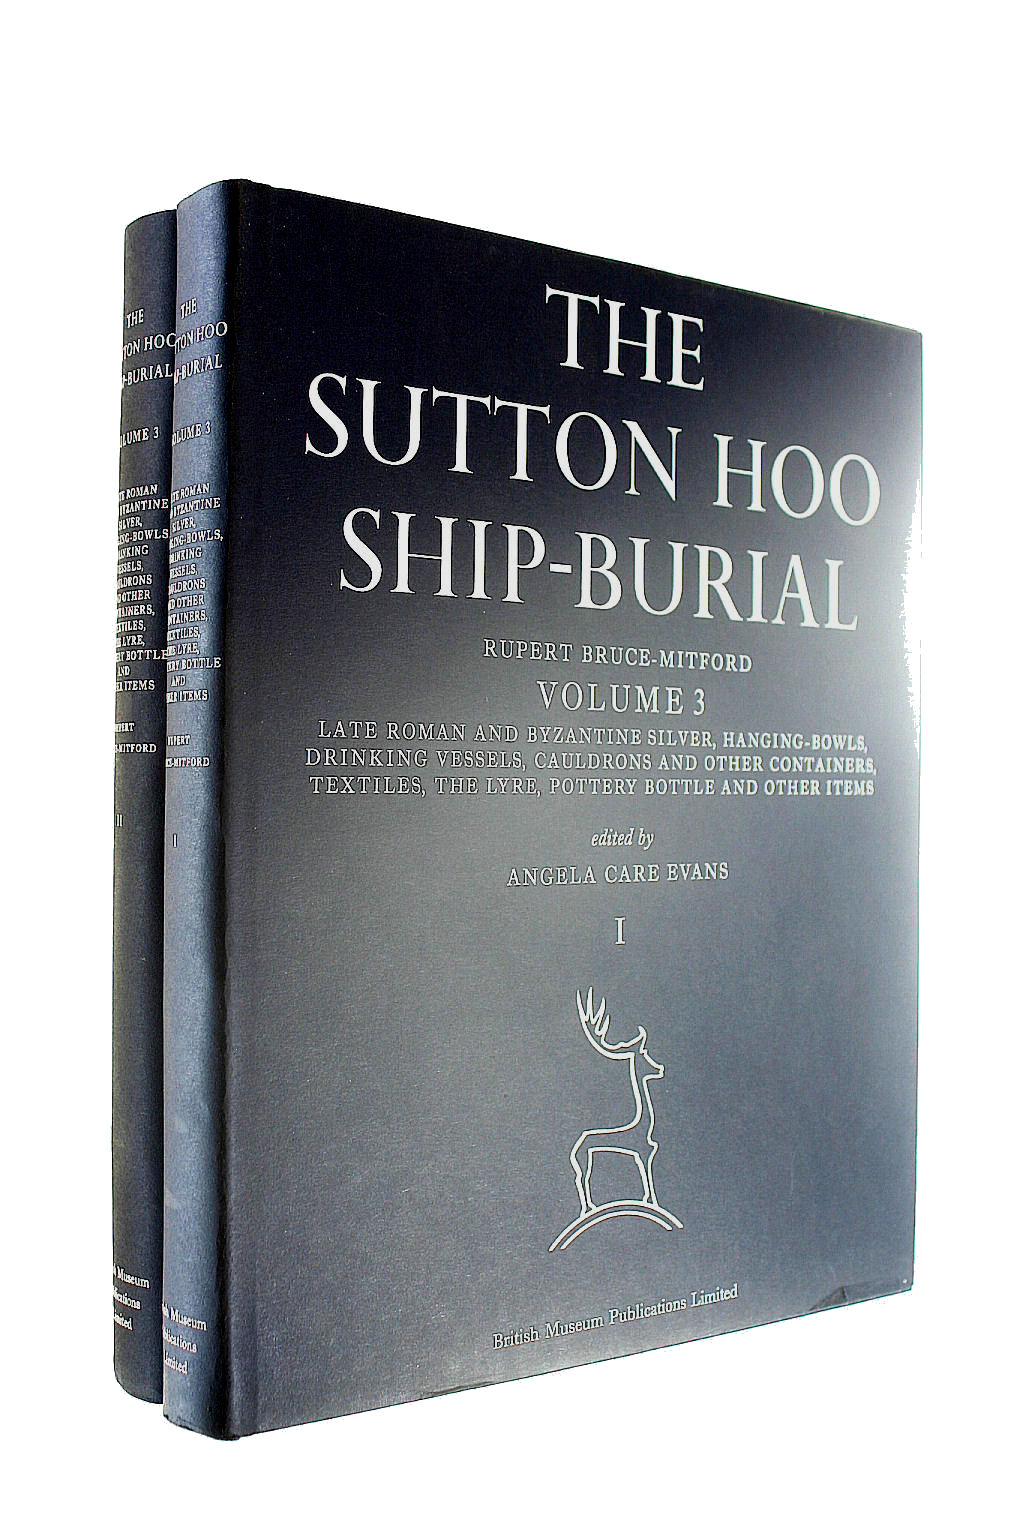 Image for The Sutton Hoo Ship Burial: Late Roman Byzantine Silver, Hanging Bowls, Drinking Vessels, Cauldrons and Other Containers, Textiles, the Lyre, Pottery Bottles and Other Items v. 3